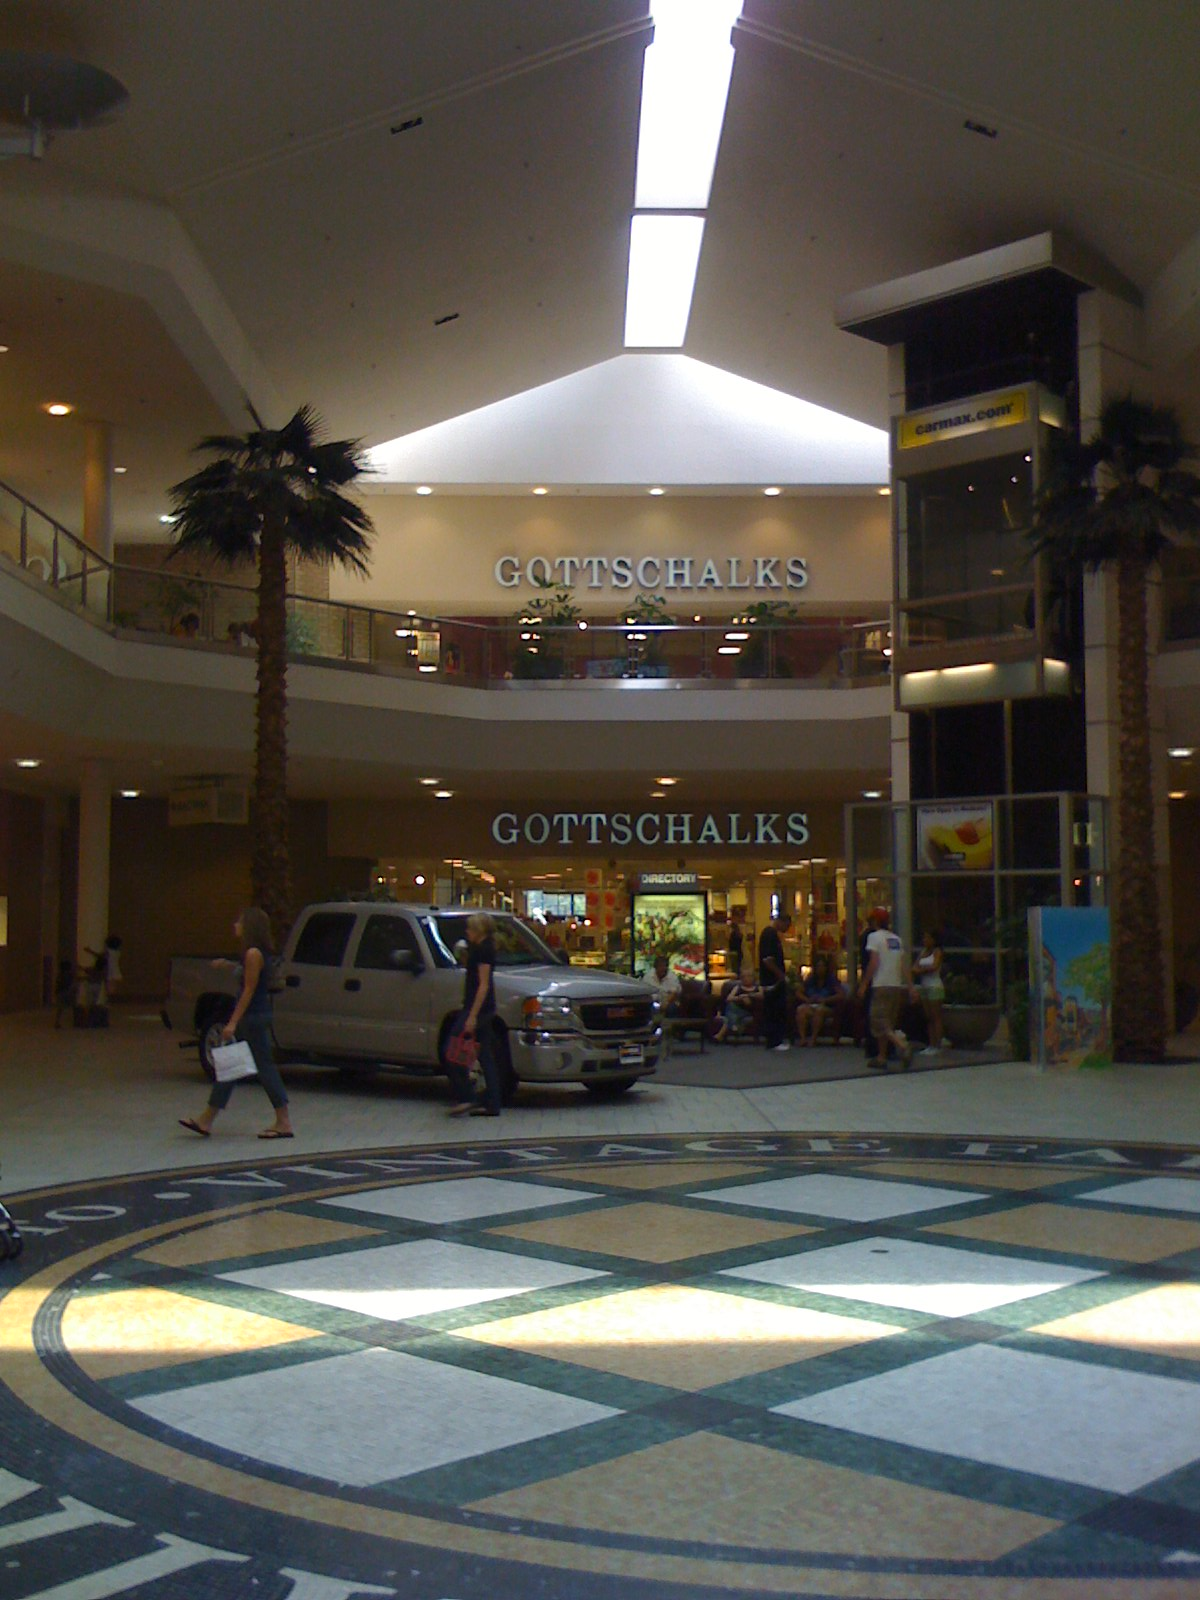 Vintage Faire Mall is a shopping mall located in Modesto, California, shopnow-vjpmehag.cf is owned and operated by The Macerich Company and is adjacent to State Route